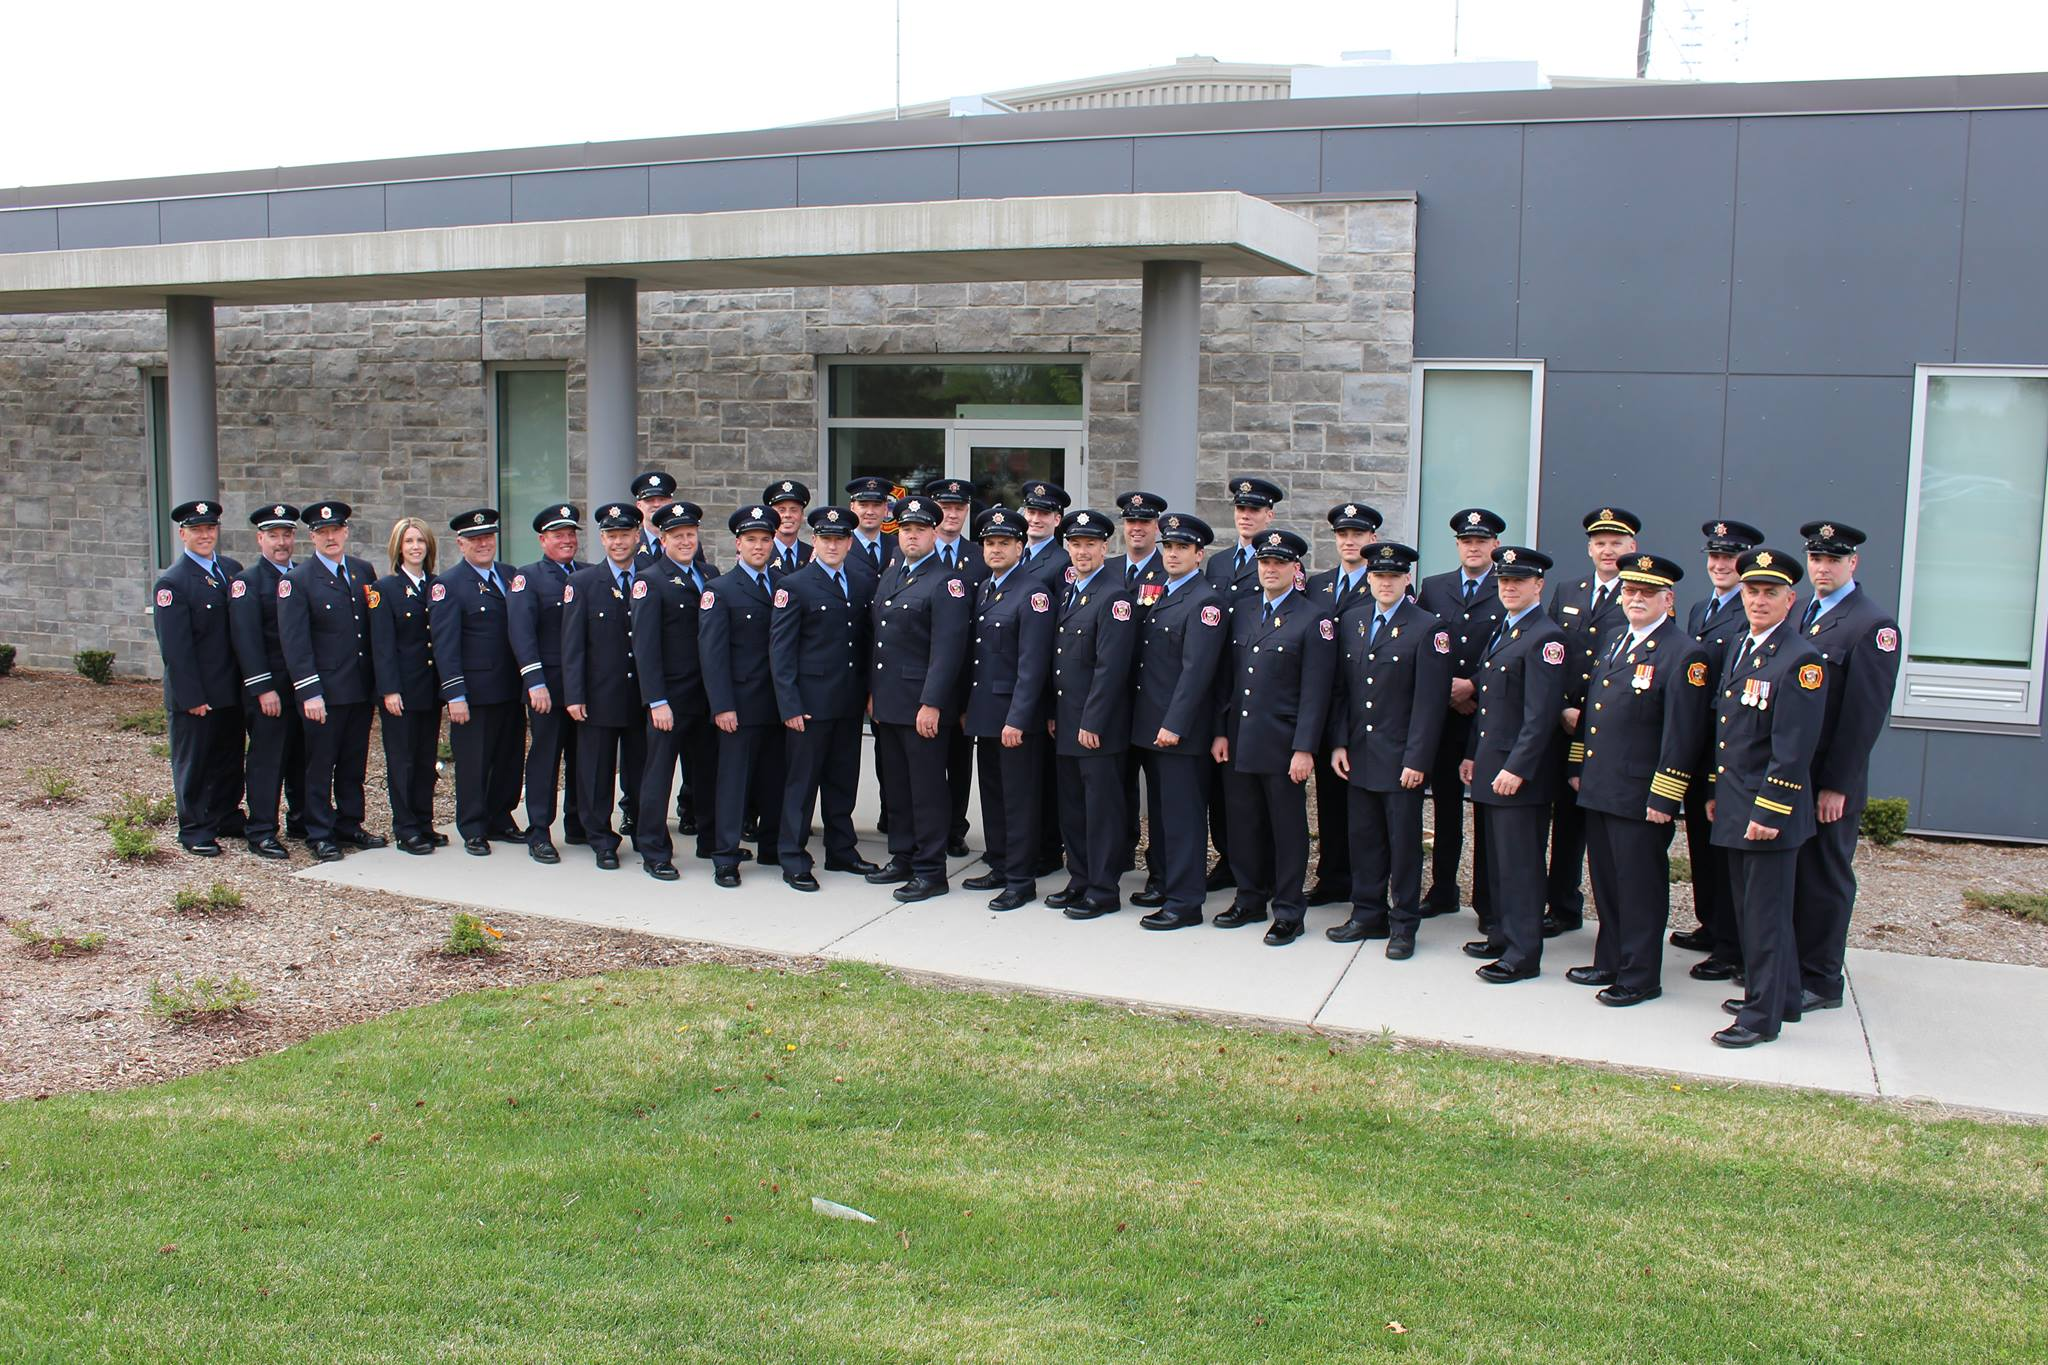 2016 LaSalle Fire Service Personnel group picture